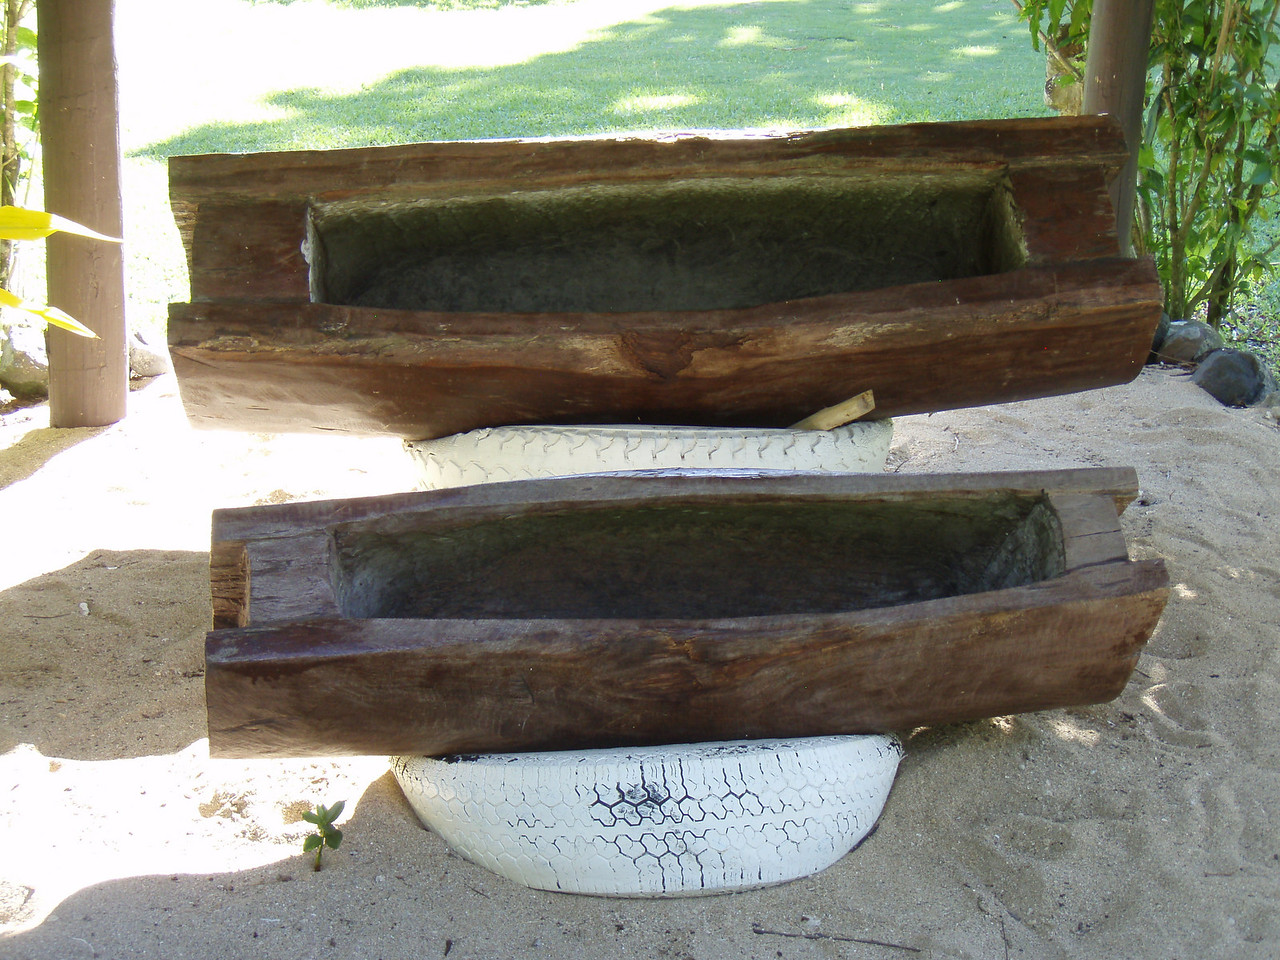 The drum logs which were played to signal meal times and events.